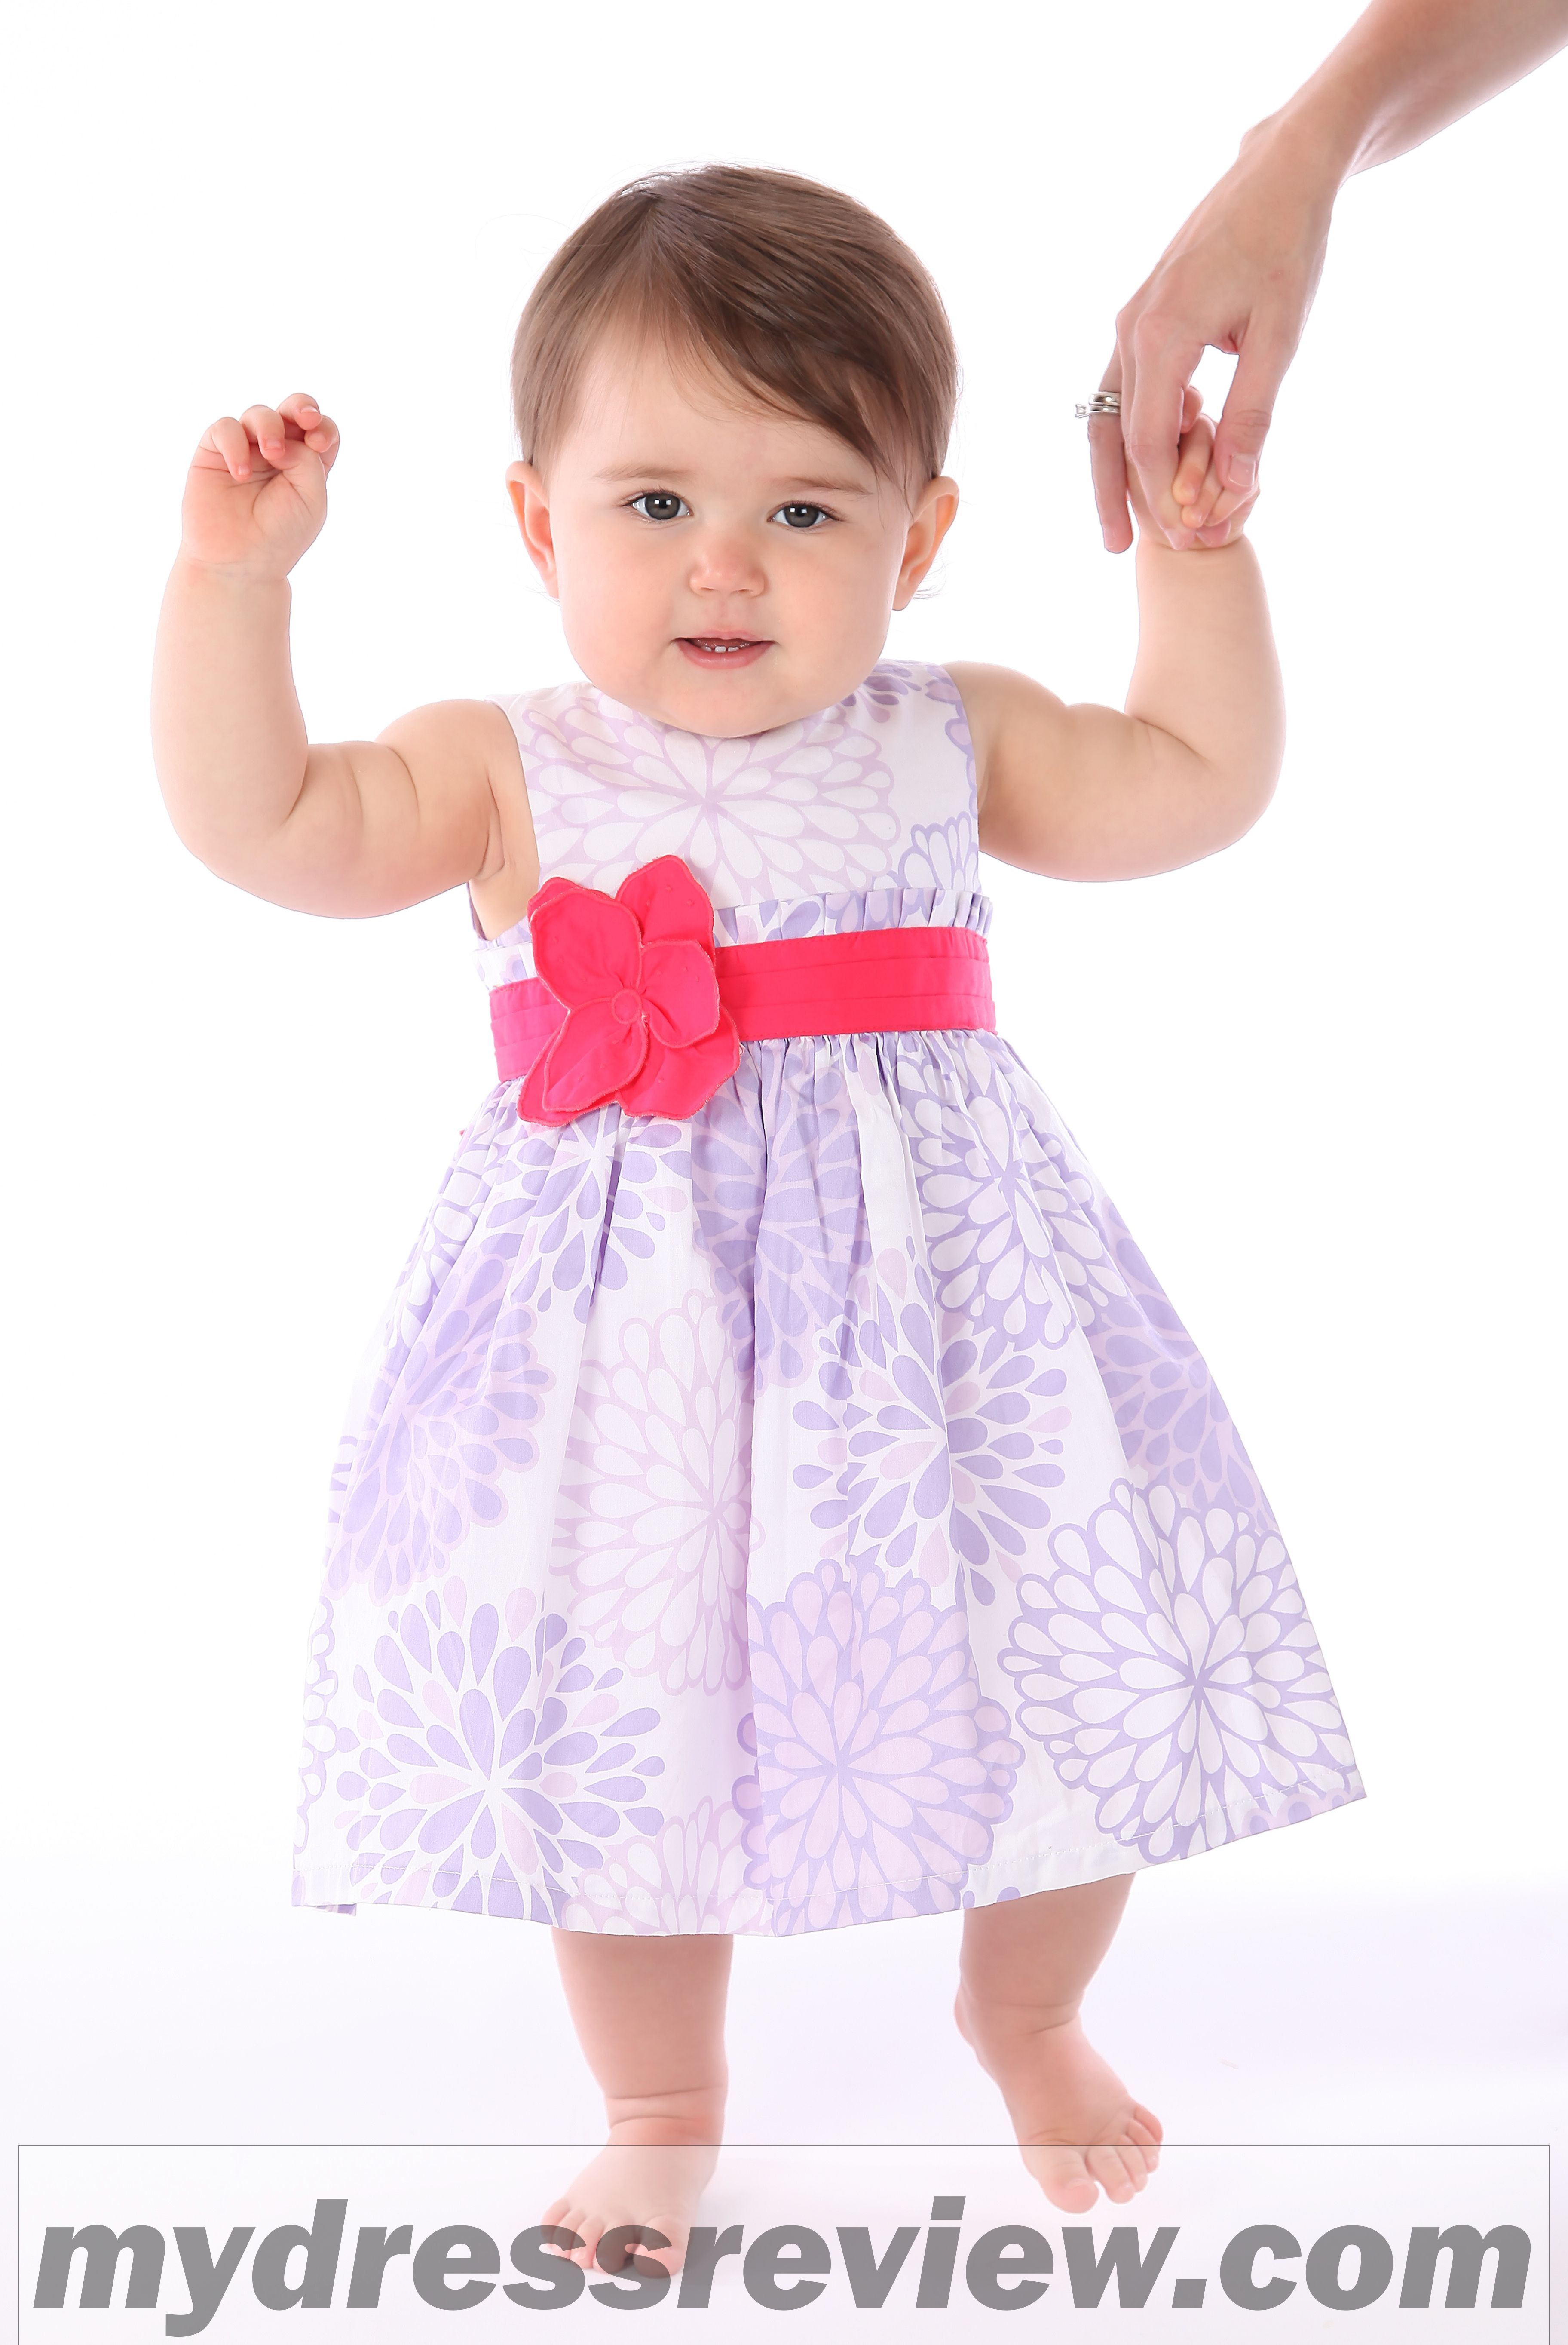 Baby Girl Dresses Inspirational 2 Year Baby Girl Party Dress and Style 2017 2018 Of Great 42 Pics Baby Girl Dresses